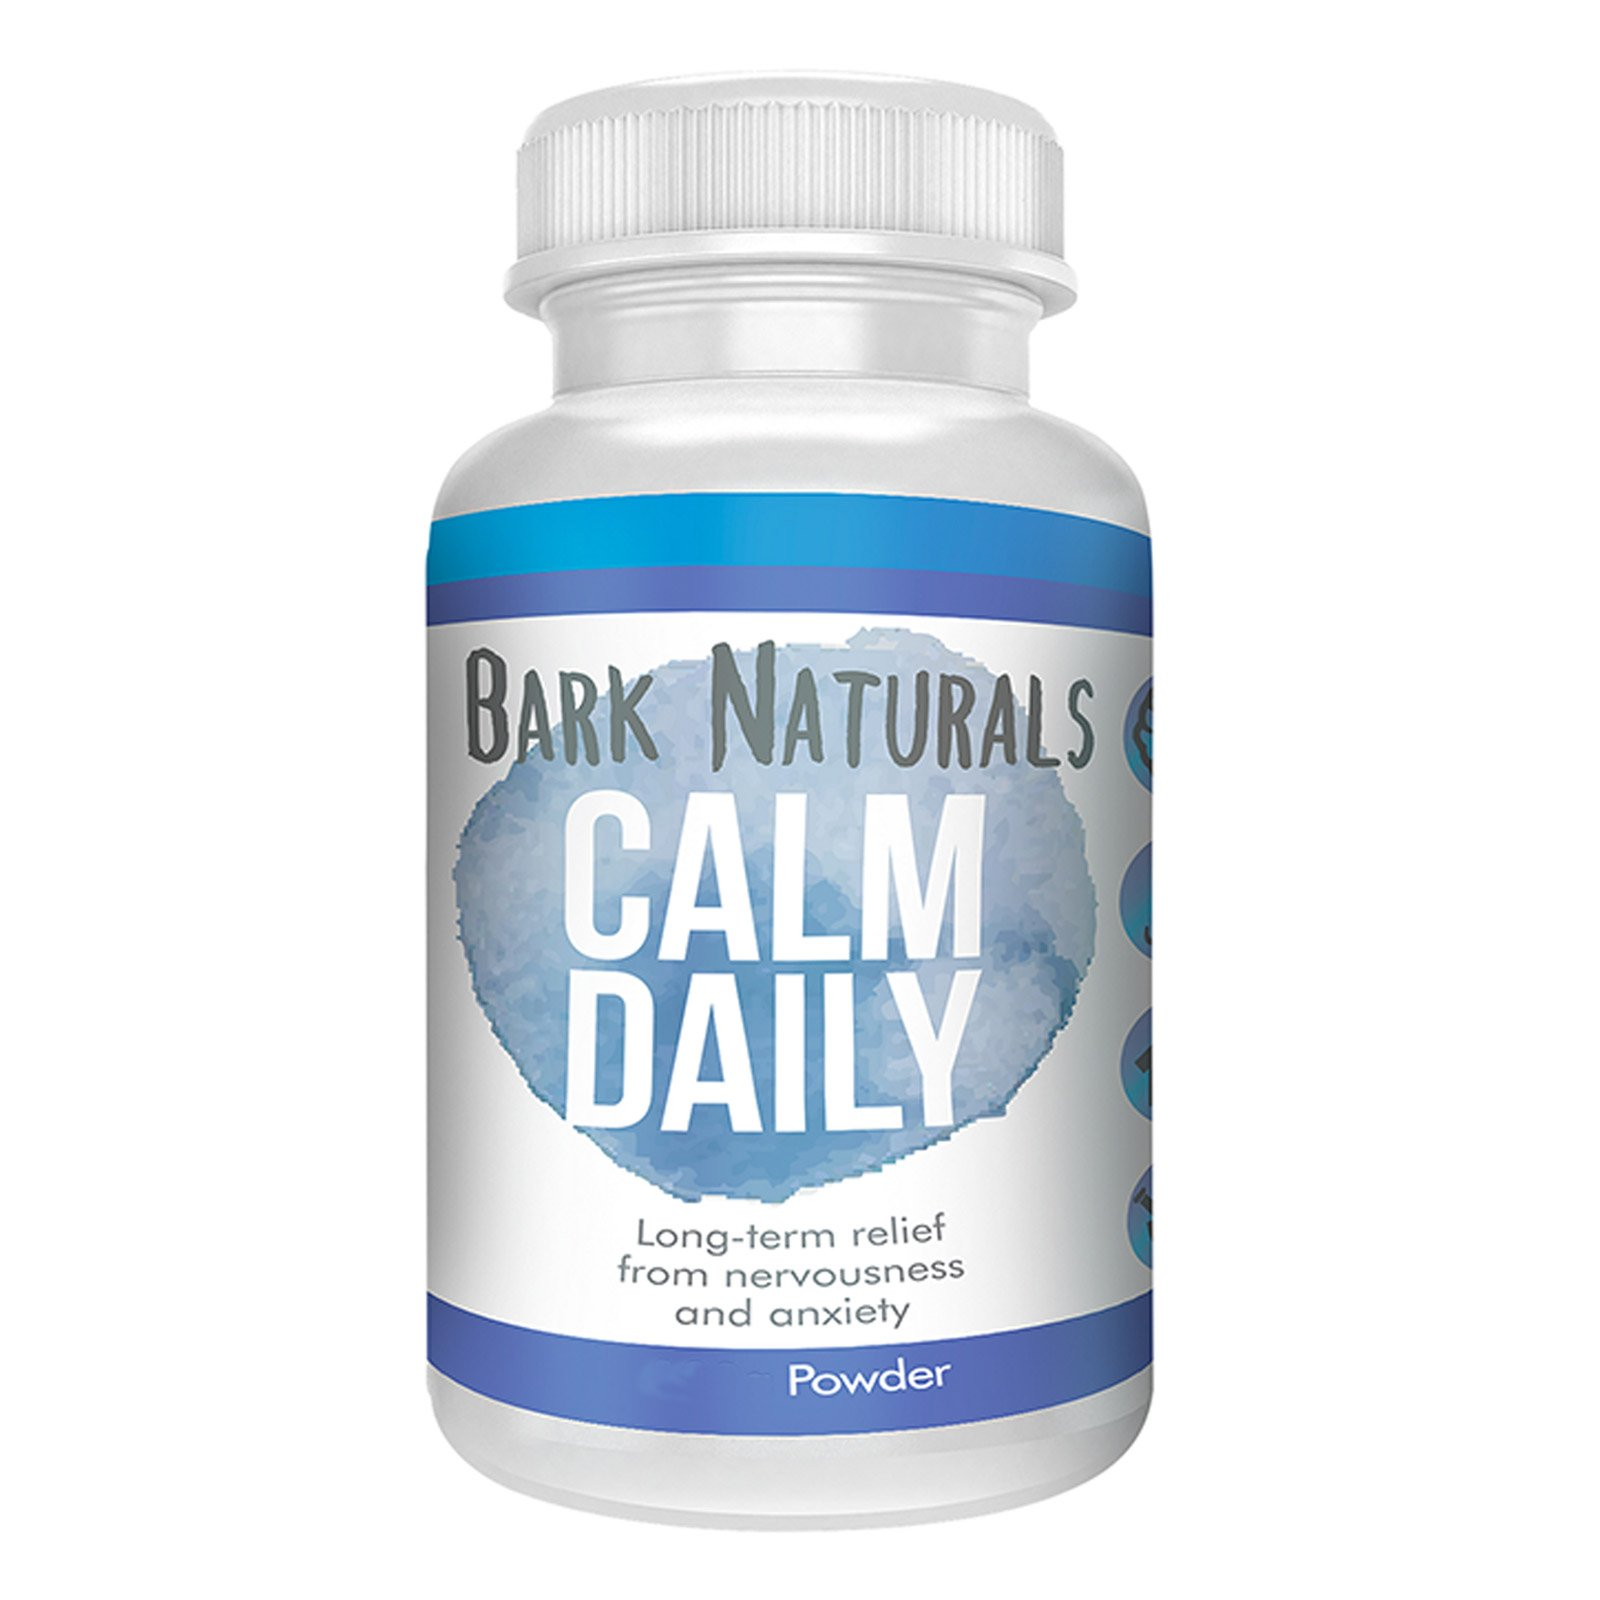 Bark Naturals Calm Daily Powder